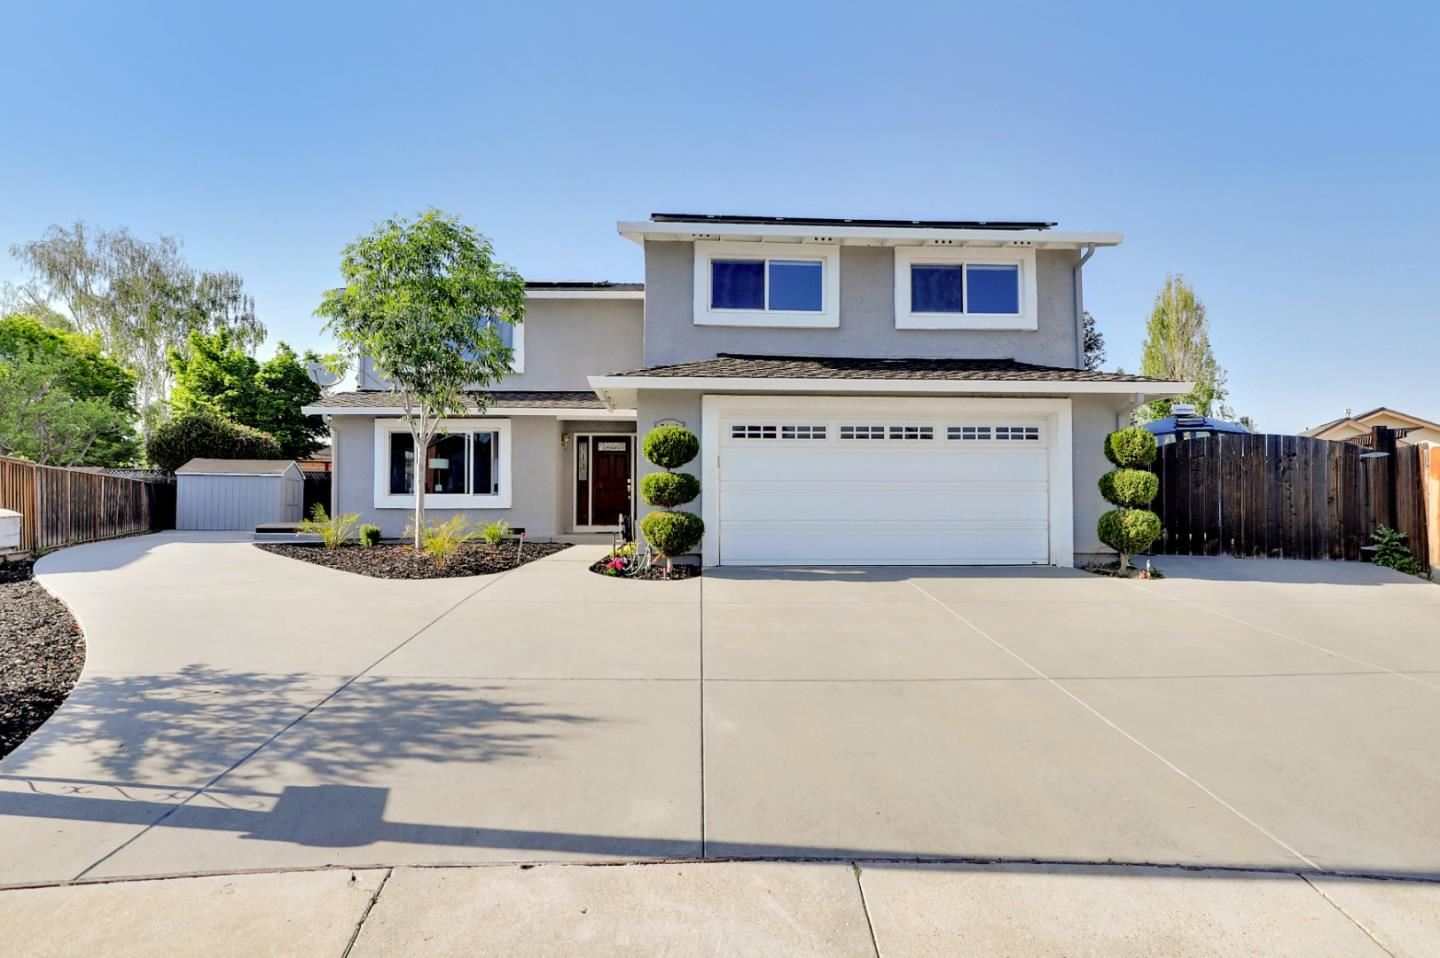 Photo for 7180 Albany Place, GILROY, CA 95020 (MLS # ML81840422)